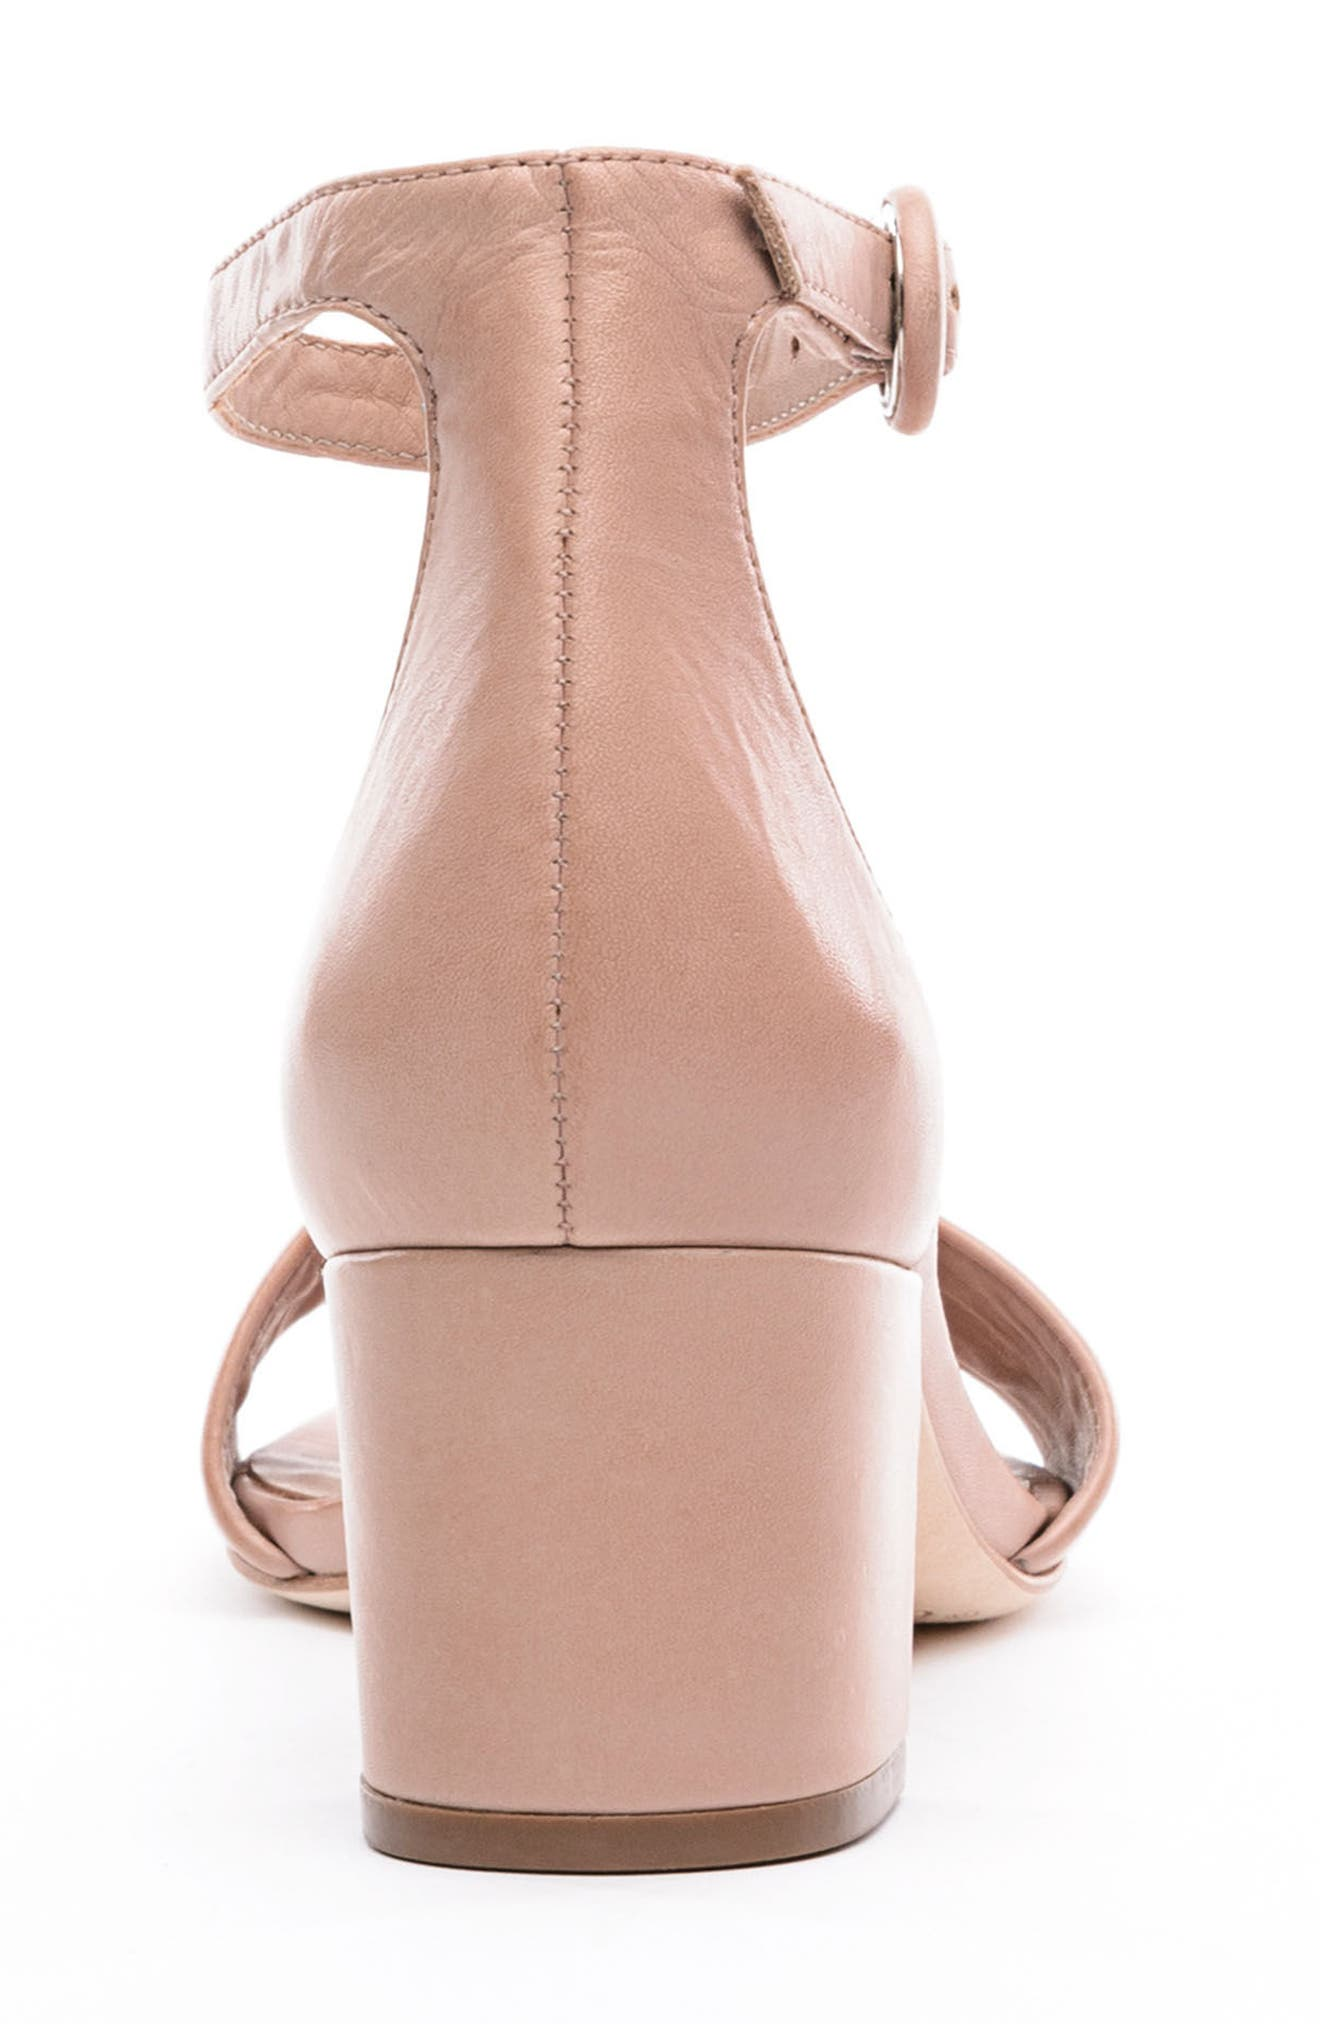 BERNARDO, Belinda Ankle Strap Sandal, Alternate thumbnail 7, color, BLUSH LEATHER